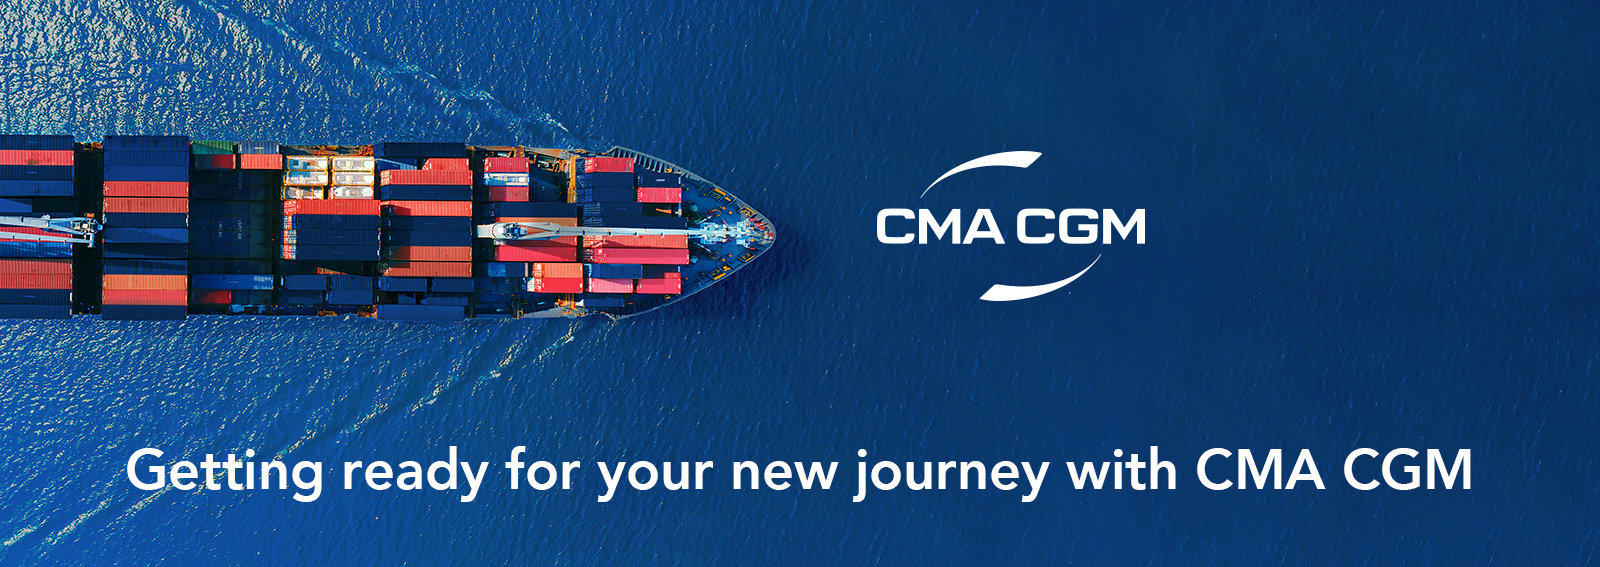 Getting ready for your new journey with CMA CGM